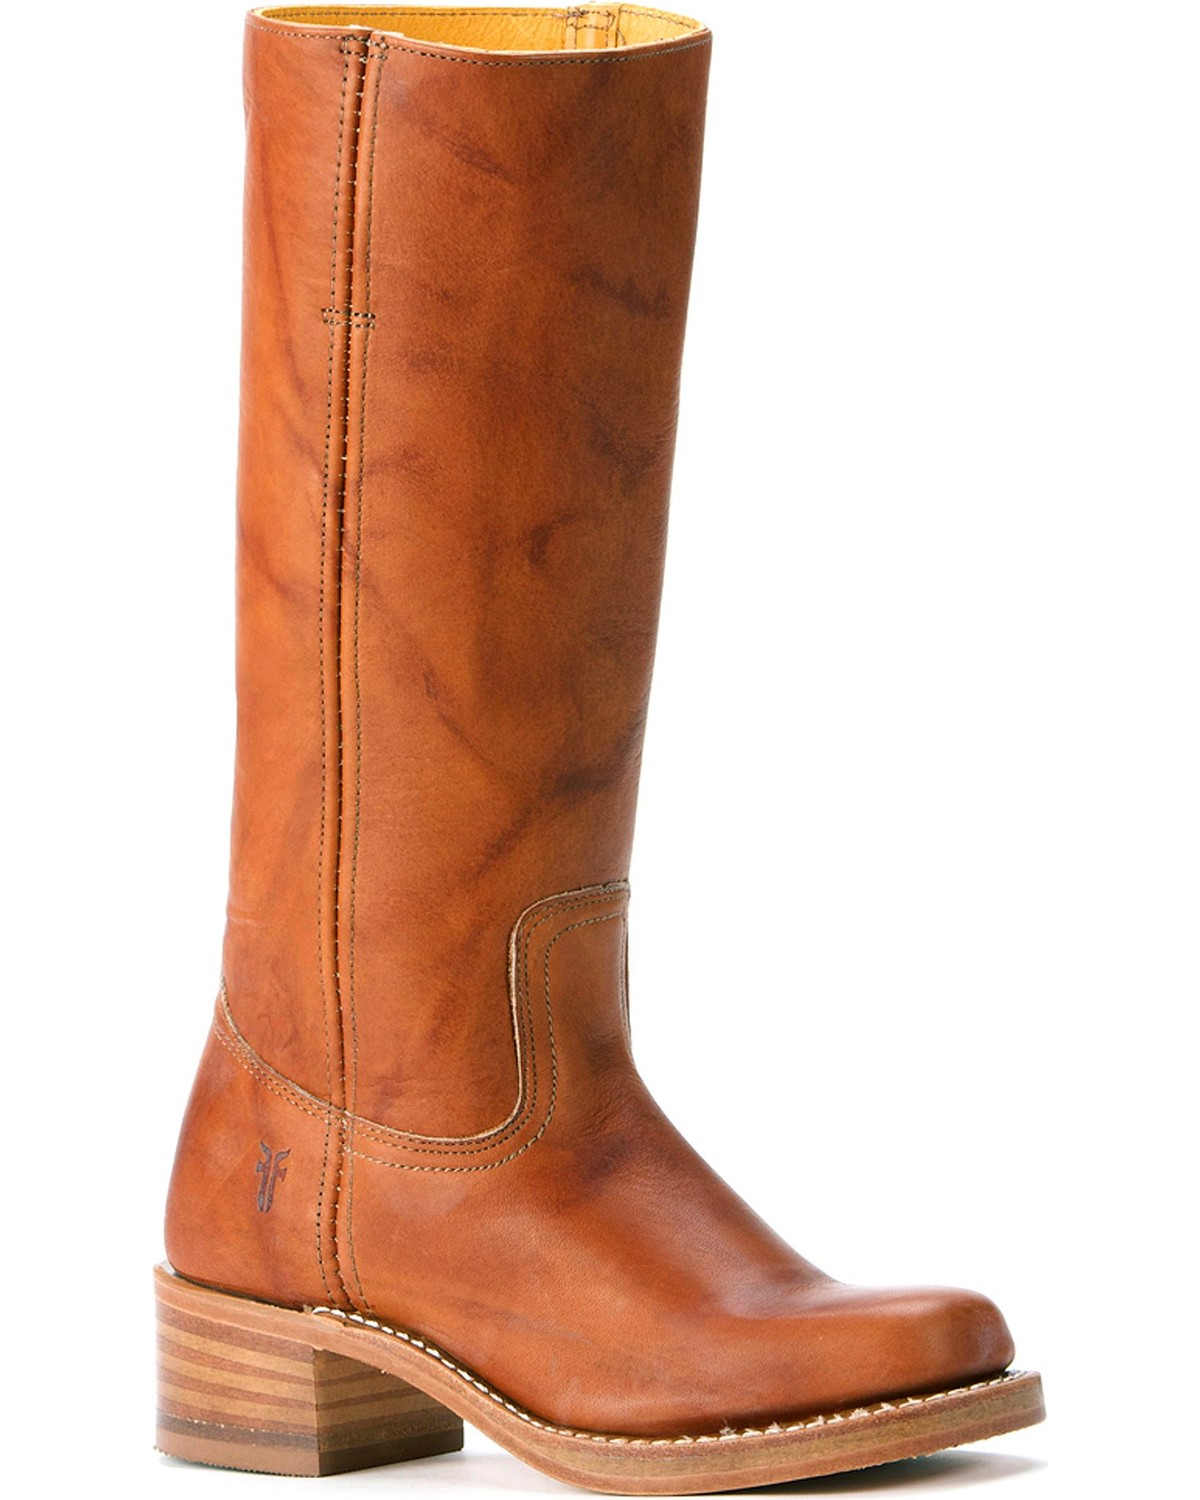 4053df555828a Frye Women s Campus Fashion Boots